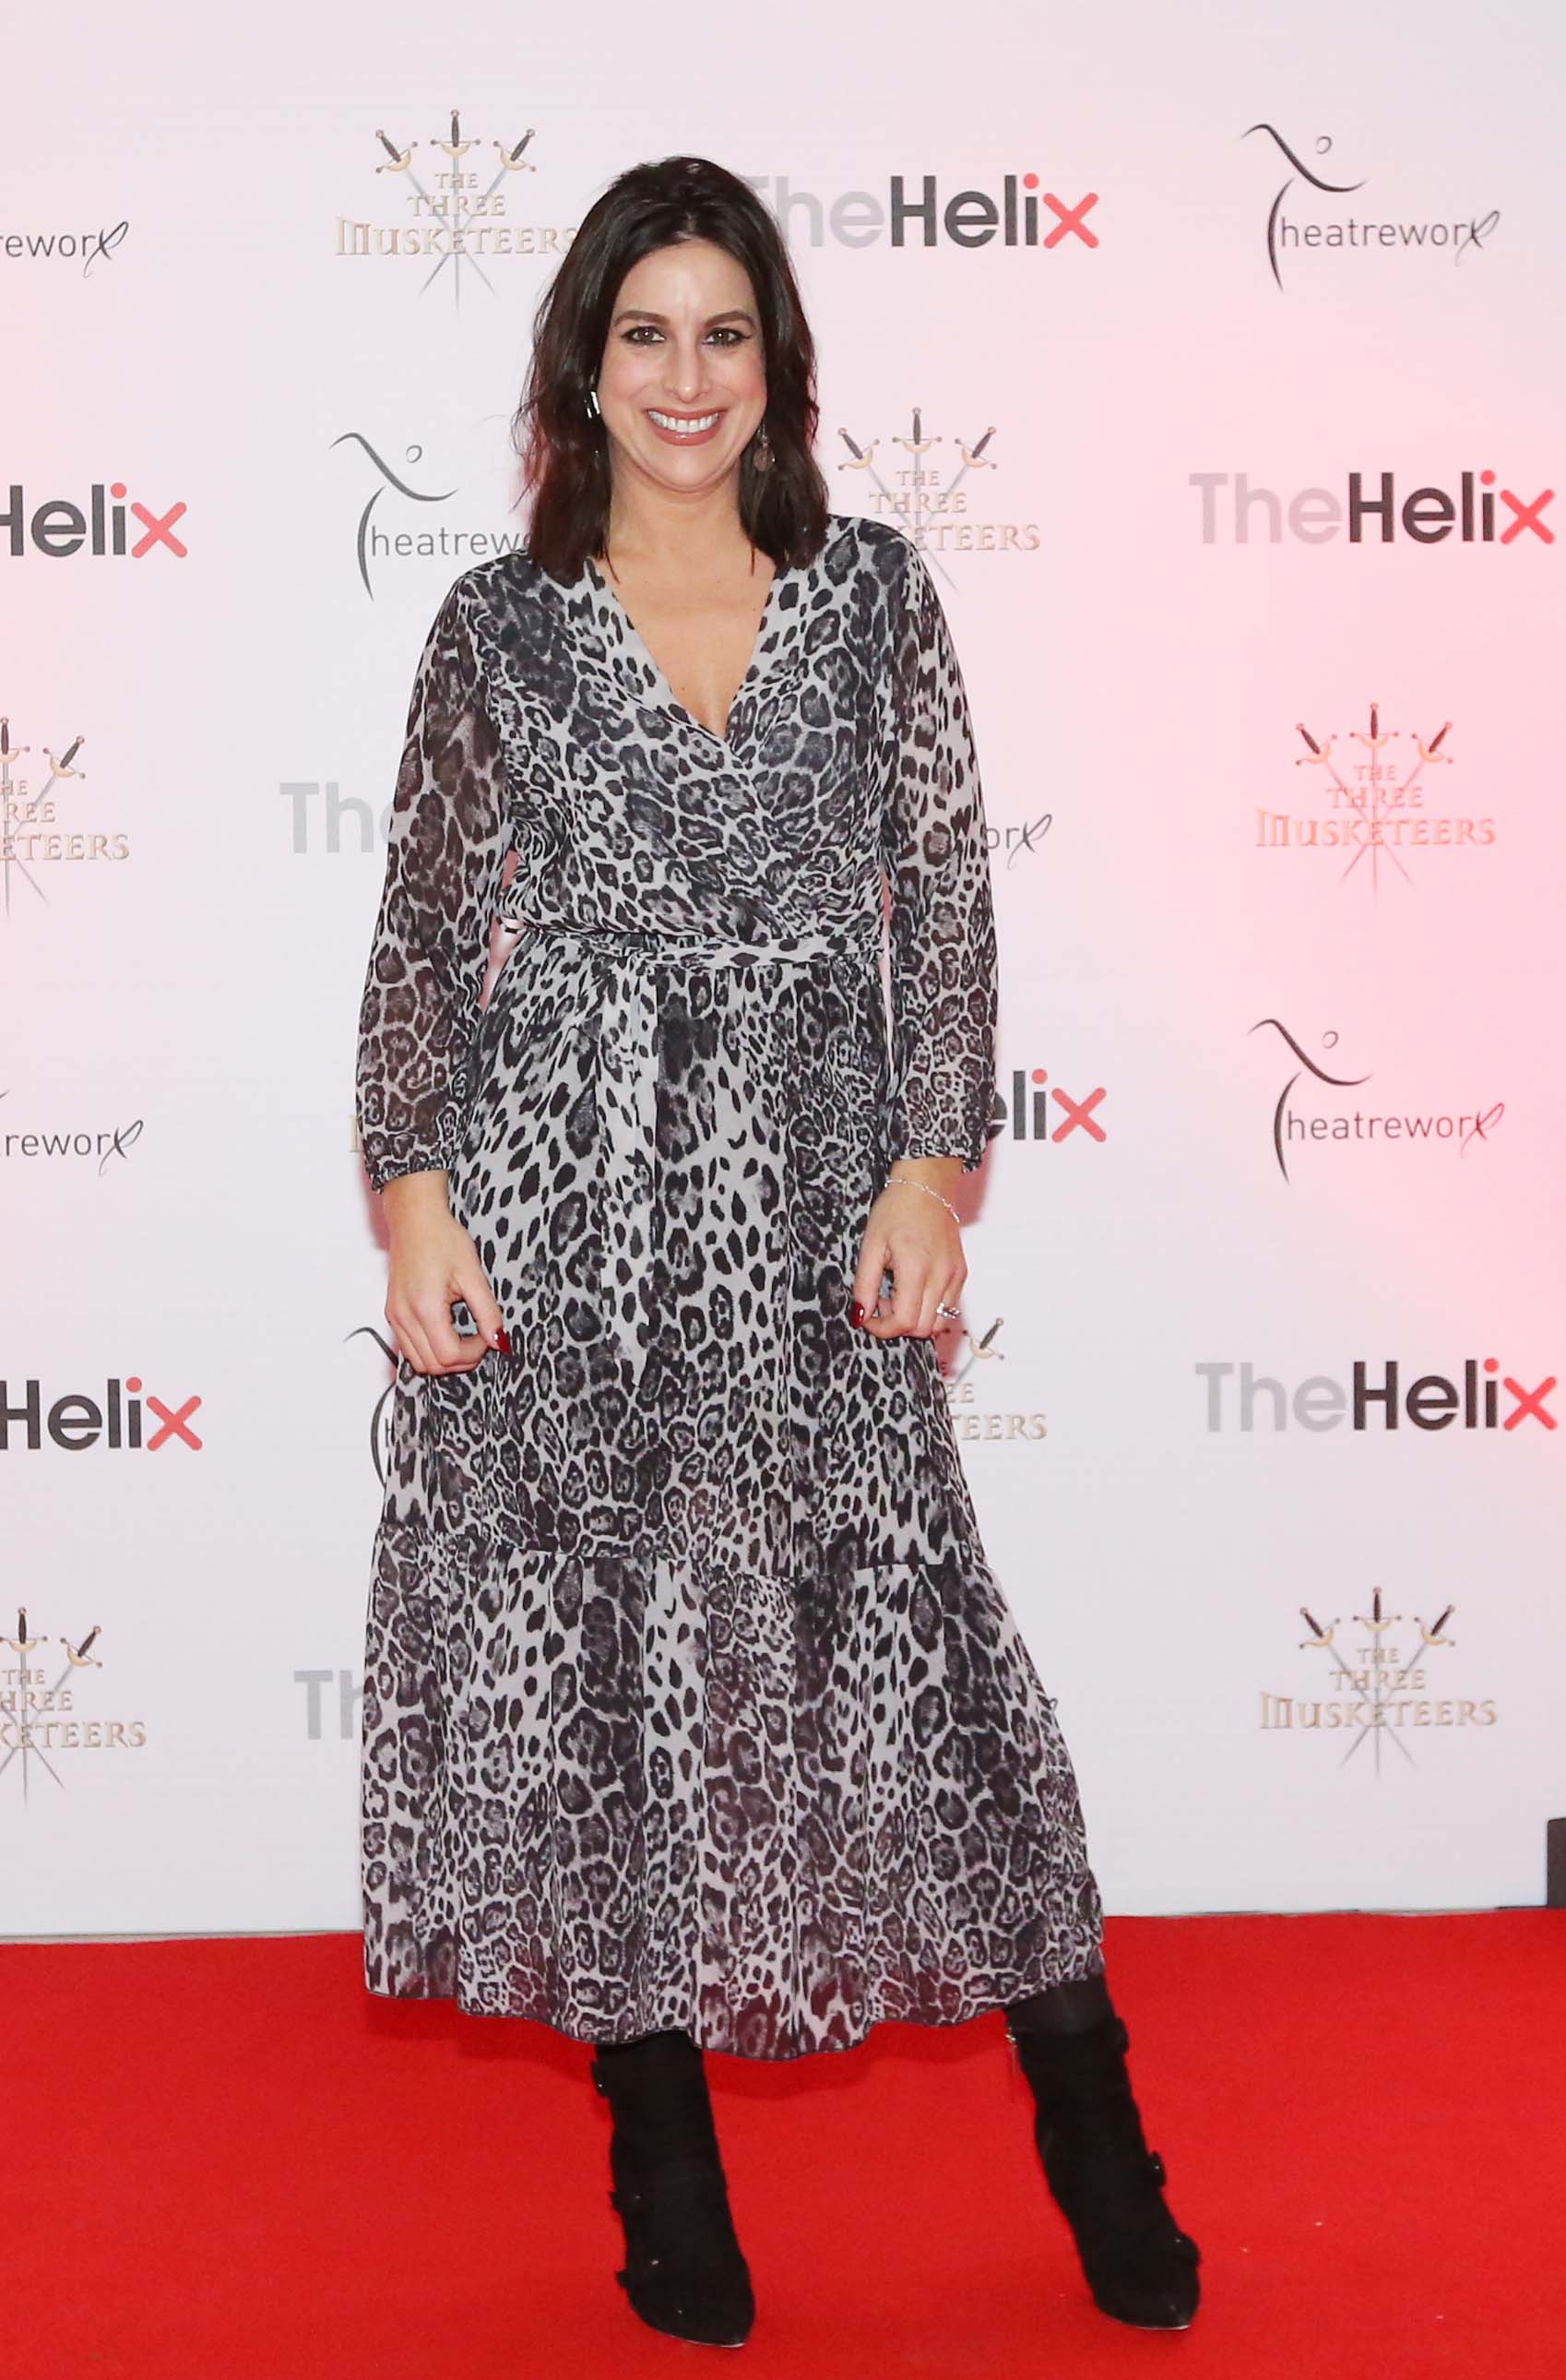 Pictured is Lucy Kennedy at the opening night of The Three Musketeers at The Helix.  Photo: Sasko Lazarov/Photocall Ireland